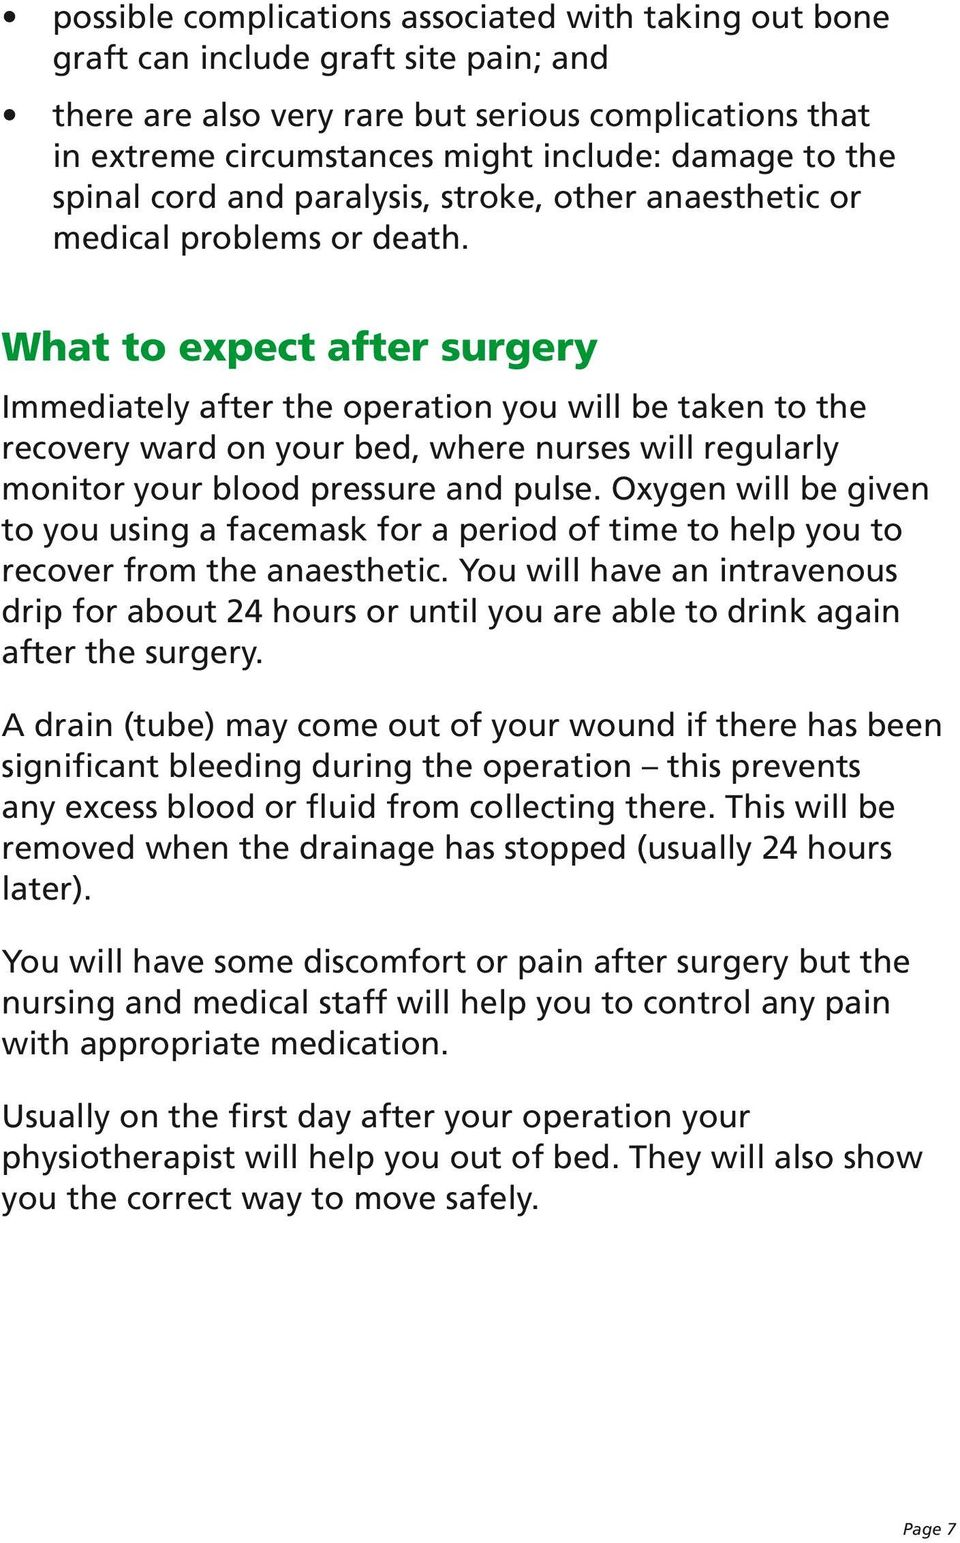 What to expect after surgery Immediately after the operation you will be taken to the recovery ward on your bed, where nurses will regularly monitor your blood pressure and pulse.